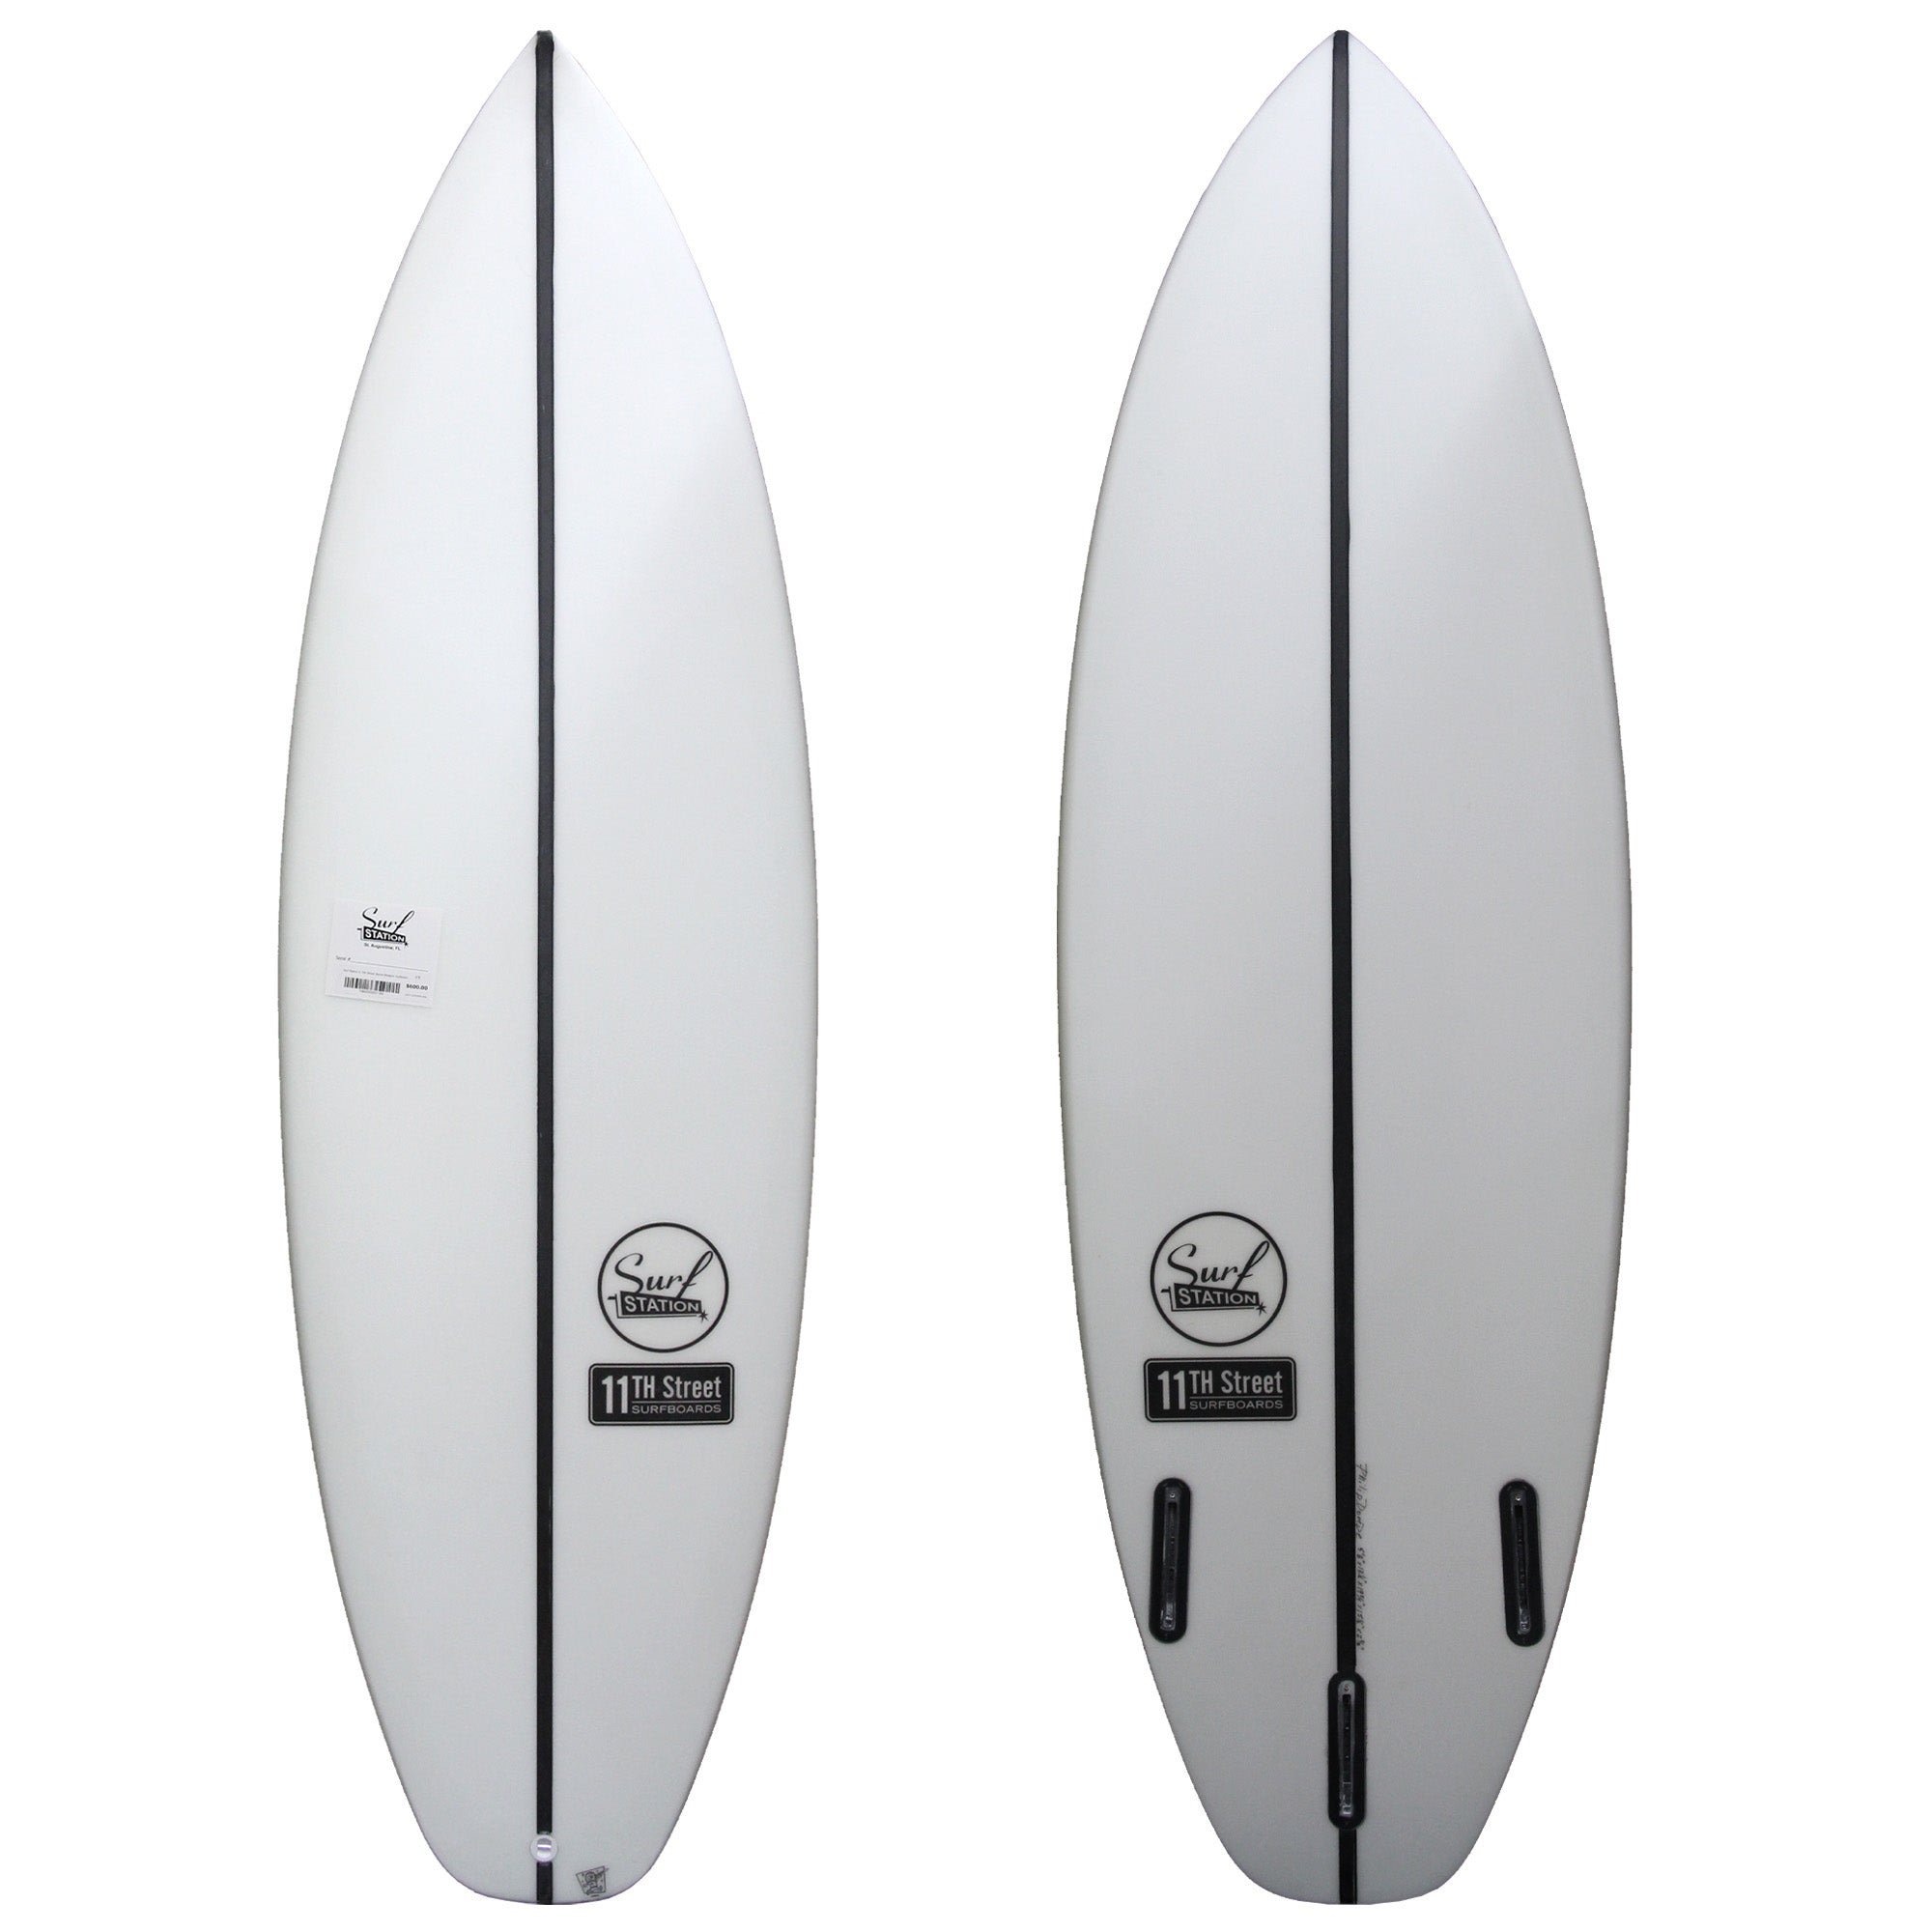 11th Street Surfboards Secret Weapon EPS Surfboard - Futures